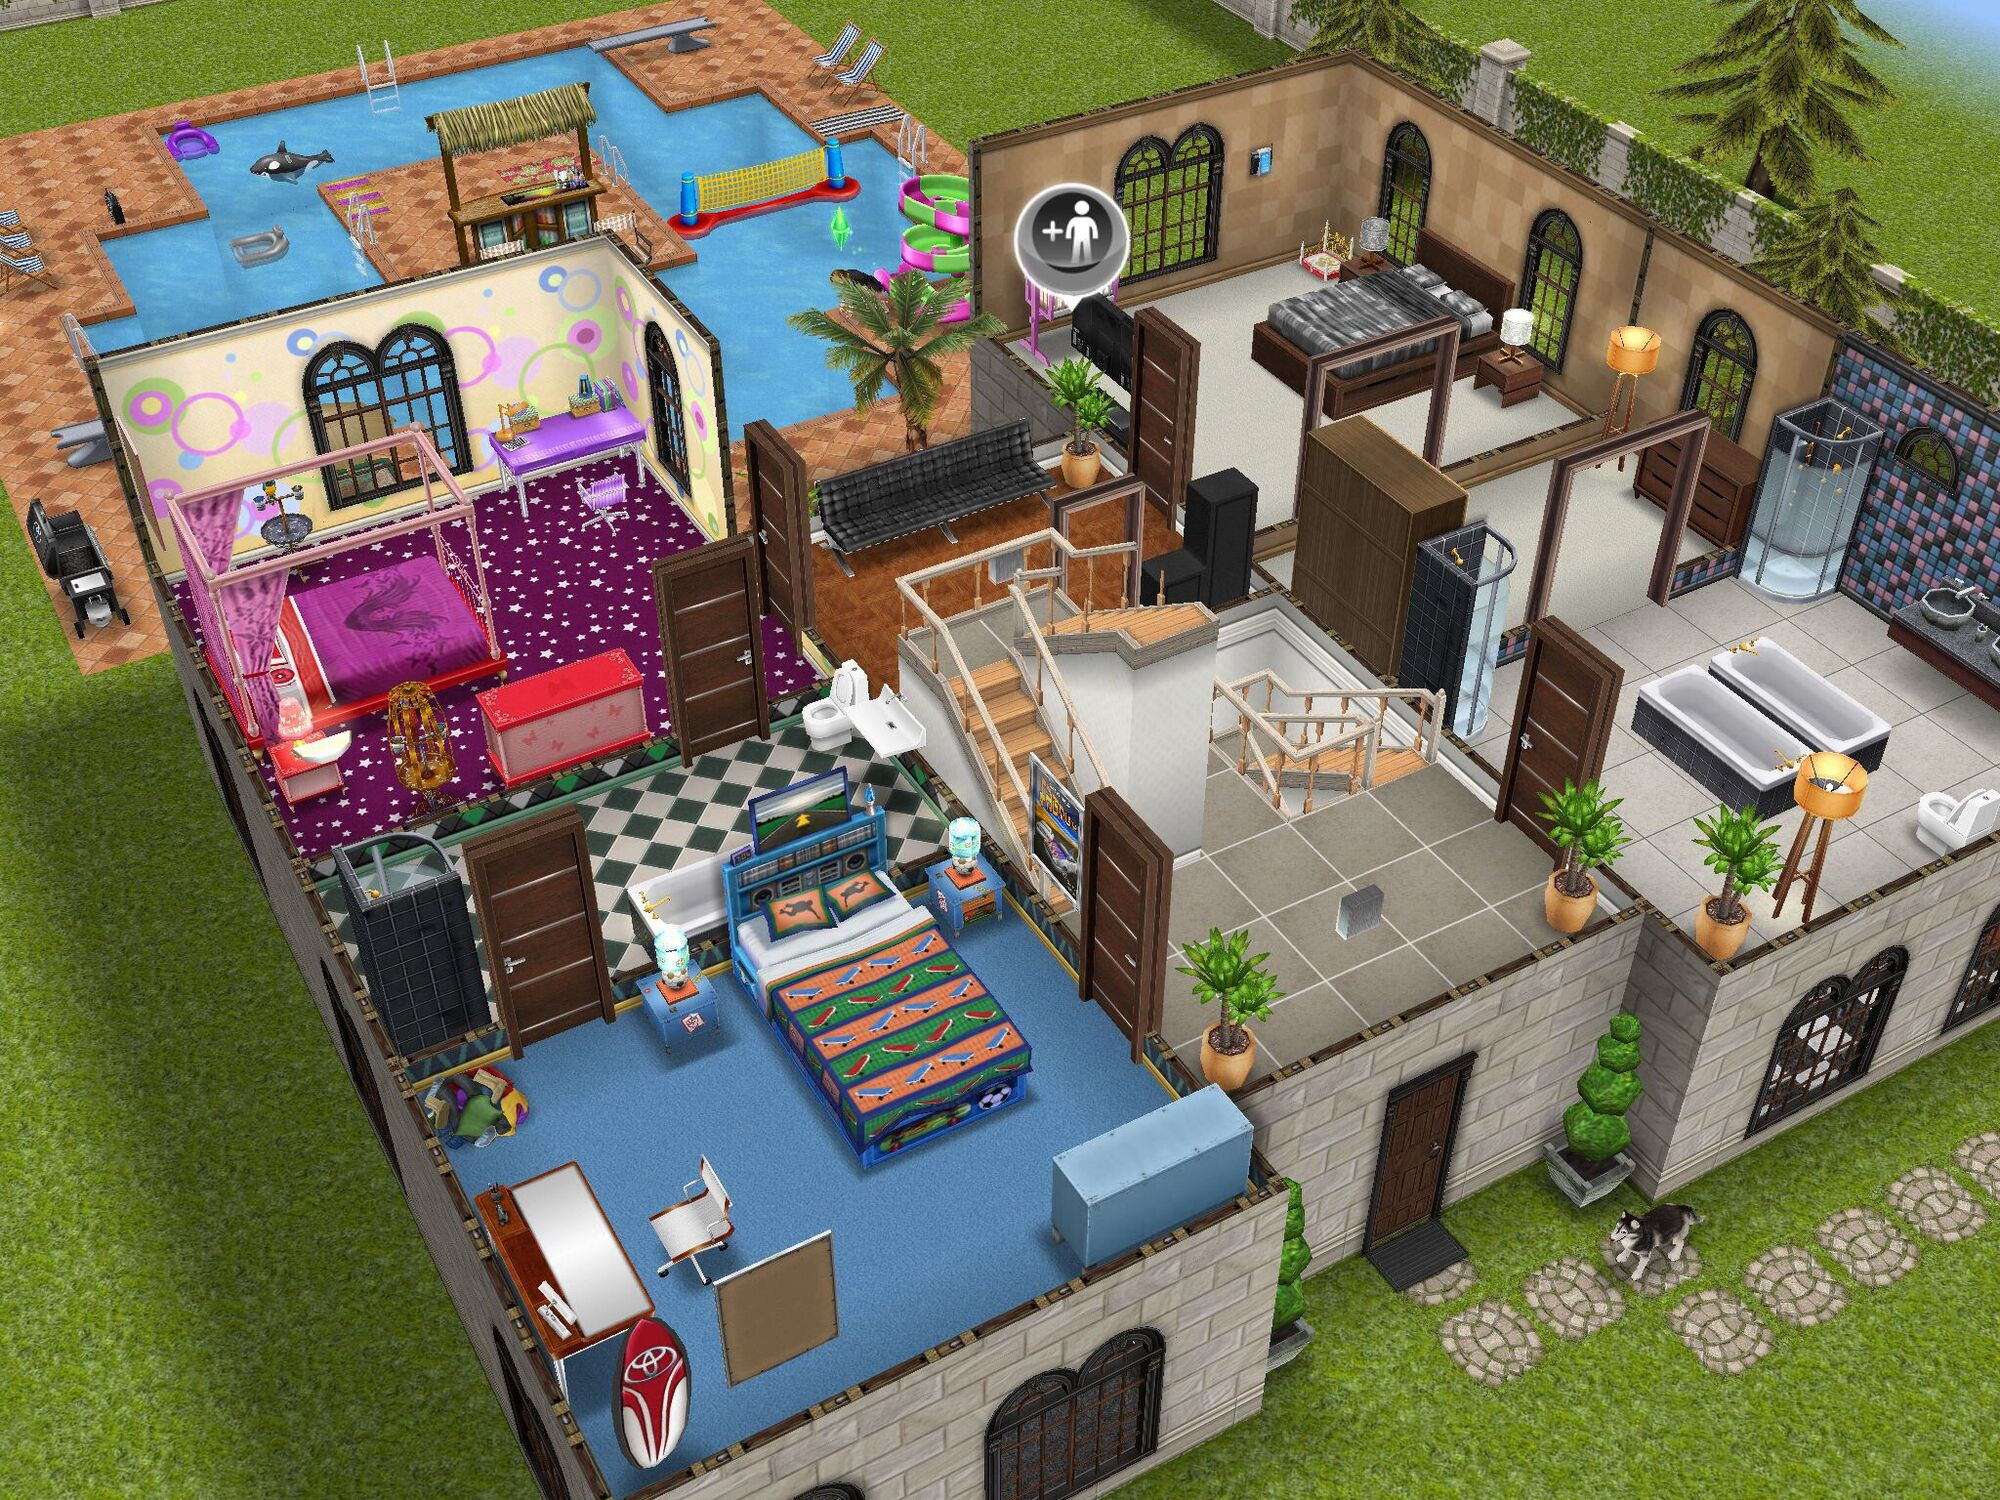 Teen Idol Mansion | The Sims Freeplay Wiki | FANDOM powered by Wikia